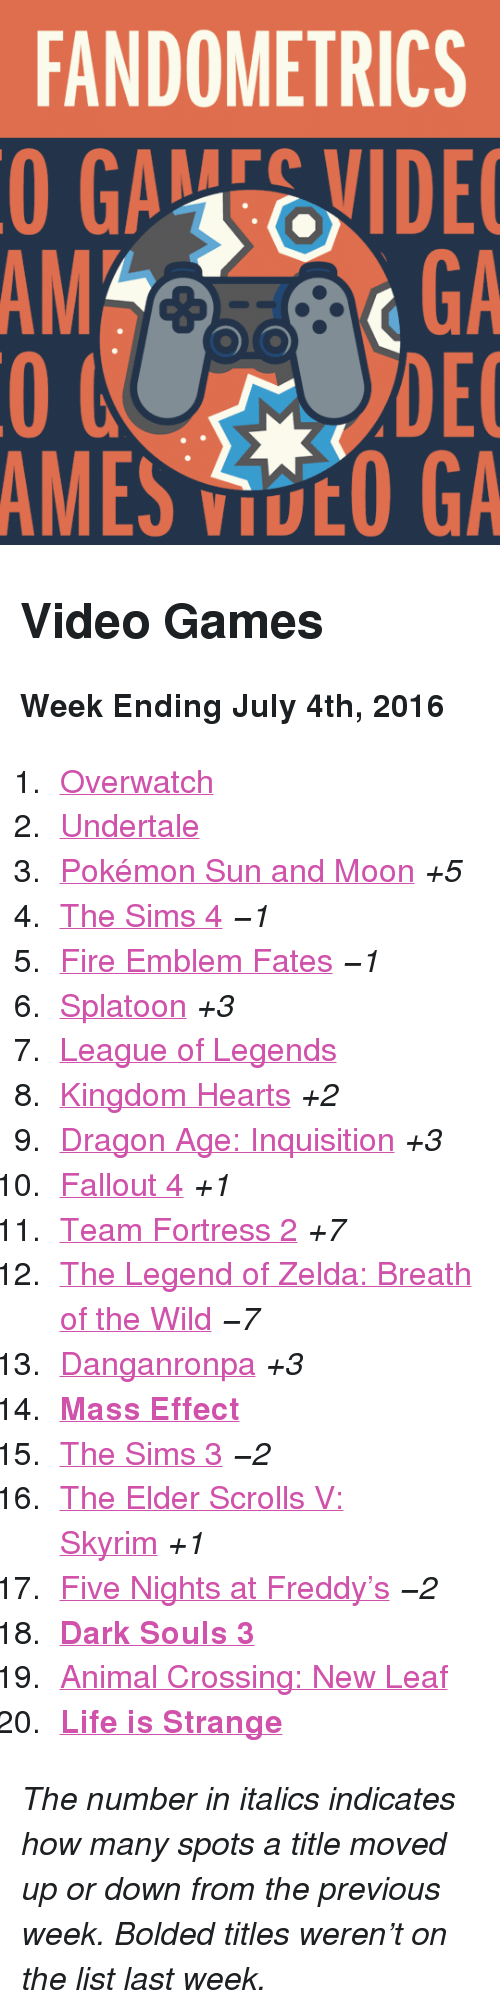 """Fallout 4, Fire, and League of Legends: FANDOMETRICS  GAEVIDE  GA  DEC  AMES VOO GA  AM <h2>Video Games</h2><p><b>Week Ending July 4th, 2016</b></p><ol><li><a href=""""http://www.tumblr.com/search/overwatch"""">Overwatch</a></li>  <li><a href=""""http://www.tumblr.com/search/undertale"""">Undertale</a></li>  <li><a href=""""http://www.tumblr.com/search/pokemon%20sun%20and%20moon"""">Pokémon Sun and Moon</a><i>+5</i></li>  <li><a href=""""http://www.tumblr.com/search/sims%204"""">The Sims 4</a><i>−1</i></li>  <li><a href=""""http://www.tumblr.com/search/fire%20emblem%20fates"""">Fire Emblem Fates</a><i>−1</i></li>  <li><a href=""""http://www.tumblr.com/search/splatoon"""">Splatoon</a><i>+3</i></li>  <li><a href=""""http://www.tumblr.com/search/league%20of%20legends"""">League of Legends</a></li>  <li><a href=""""http://www.tumblr.com/search/kingdom%20hearts"""">Kingdom Hearts</a><i>+2</i></li>  <li><a href=""""http://www.tumblr.com/search/dragon%20age%20inquisition"""">Dragon Age: Inquisition</a><i>+3</i></li>  <li><a href=""""http://www.tumblr.com/search/fallout%204"""">Fallout 4</a><i>+1</i></li>  <li><a href=""""http://www.tumblr.com/search/tf2"""">Team Fortress 2</a><i>+7</i></li>  <li><a href=""""http://www.tumblr.com/search/breath%20of%20the%20wild"""">The Legend of Zelda: Breath of the Wild</a><i>−7</i></li>  <li><a href=""""http://www.tumblr.com/search/dangan%20ronpa"""">Danganronpa</a><i>+3</i></li>  <li><a href=""""http://www.tumblr.com/search/mass%20effect""""><b>Mass Effect</b></a></li>  <li><a href=""""http://www.tumblr.com/search/sims%203"""">The Sims 3</a><i>−2</i></li>  <li><a href=""""http://www.tumblr.com/search/skyrim"""">The Elder Scrolls V: Skyrim</a><i>+1</i></li>  <li><a href=""""http://www.tumblr.com/search/five%20nights%20at%20freddy's"""">Five Nights at Freddy&rsquo;s</a><i>−2</i></li>  <li><a href=""""http://www.tumblr.com/search/dark%20souls%203""""><b>Dark Souls 3</b></a></li>  <li><a href=""""http://www.tumblr.com/search/acnl"""">Animal Crossing: New Leaf</a></li>  <li><a href=""""http://www.tumblr.com/search/life%20is%20strange""""><b>Life is Strange</b>"""